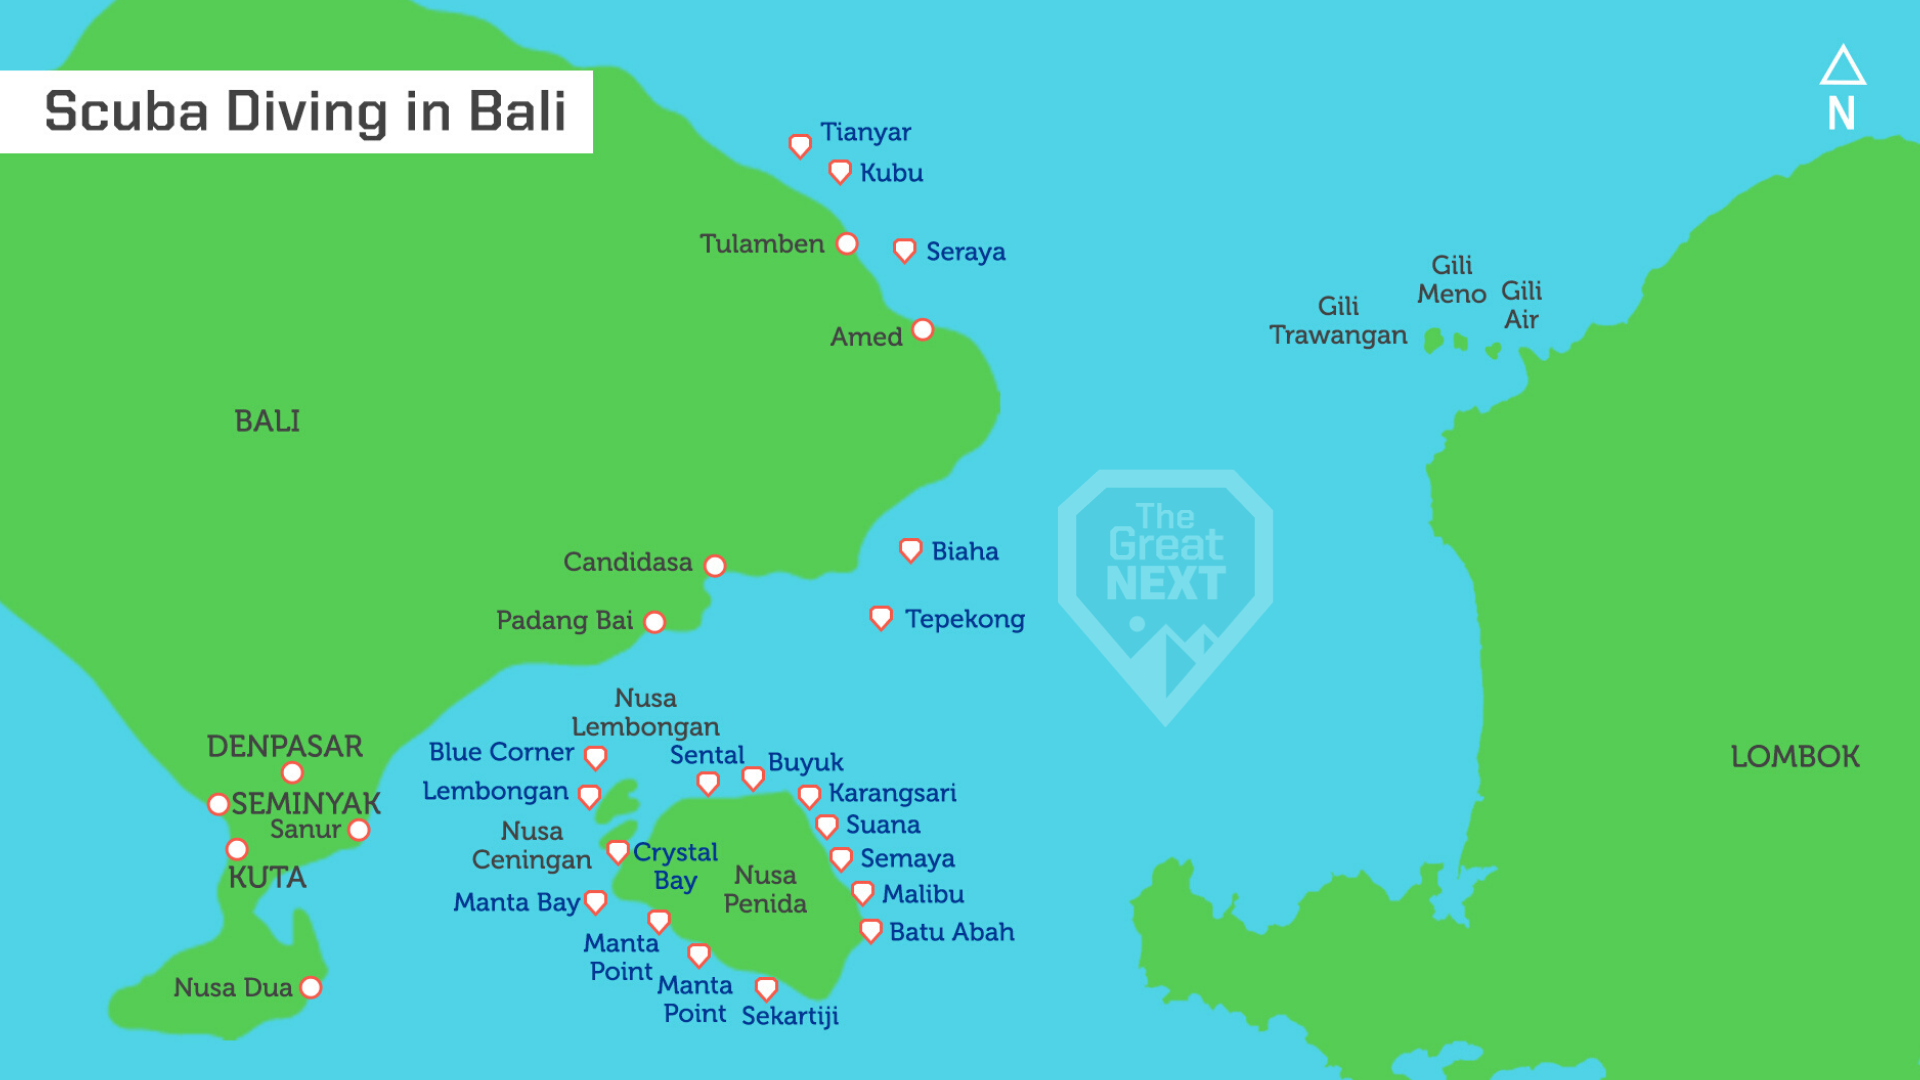 Map of Bali with most famous dive sites marked on it